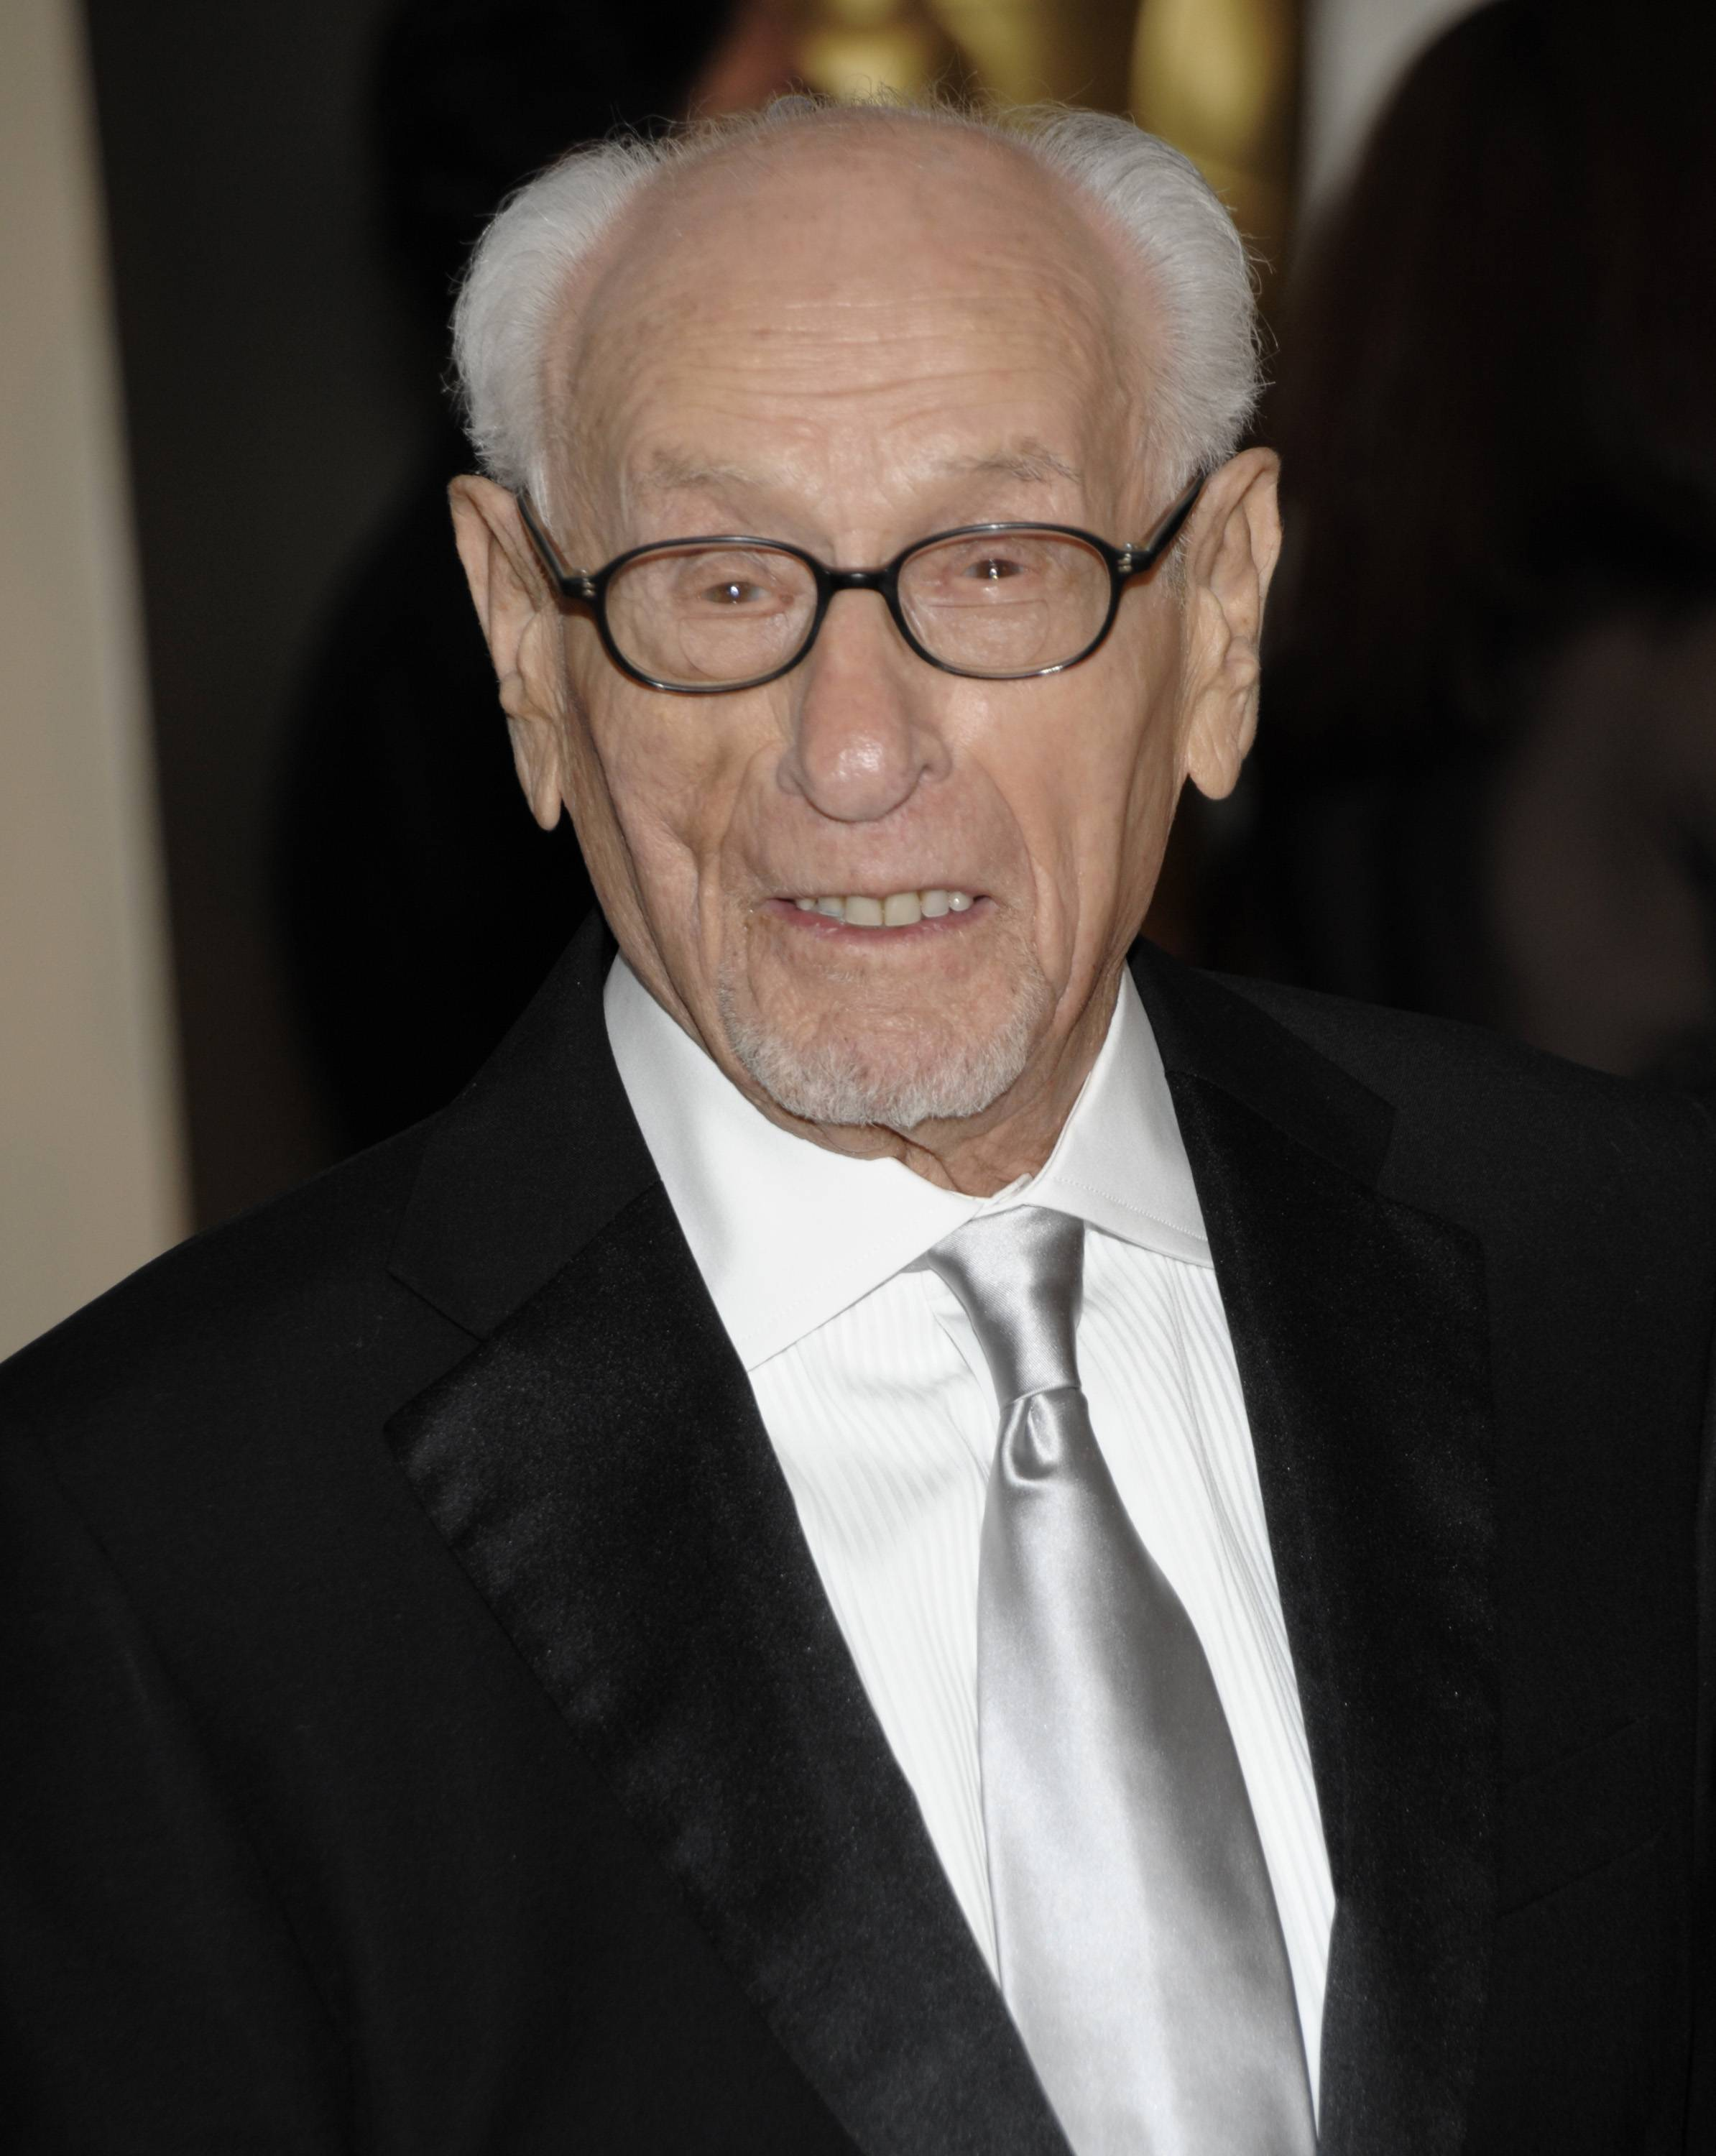 Eli Wallach, the raspy-voiced character actor who starred in dozens of movies and Broadway plays over a remarkable and enduring career, died Monday of natural causes. He was 98.